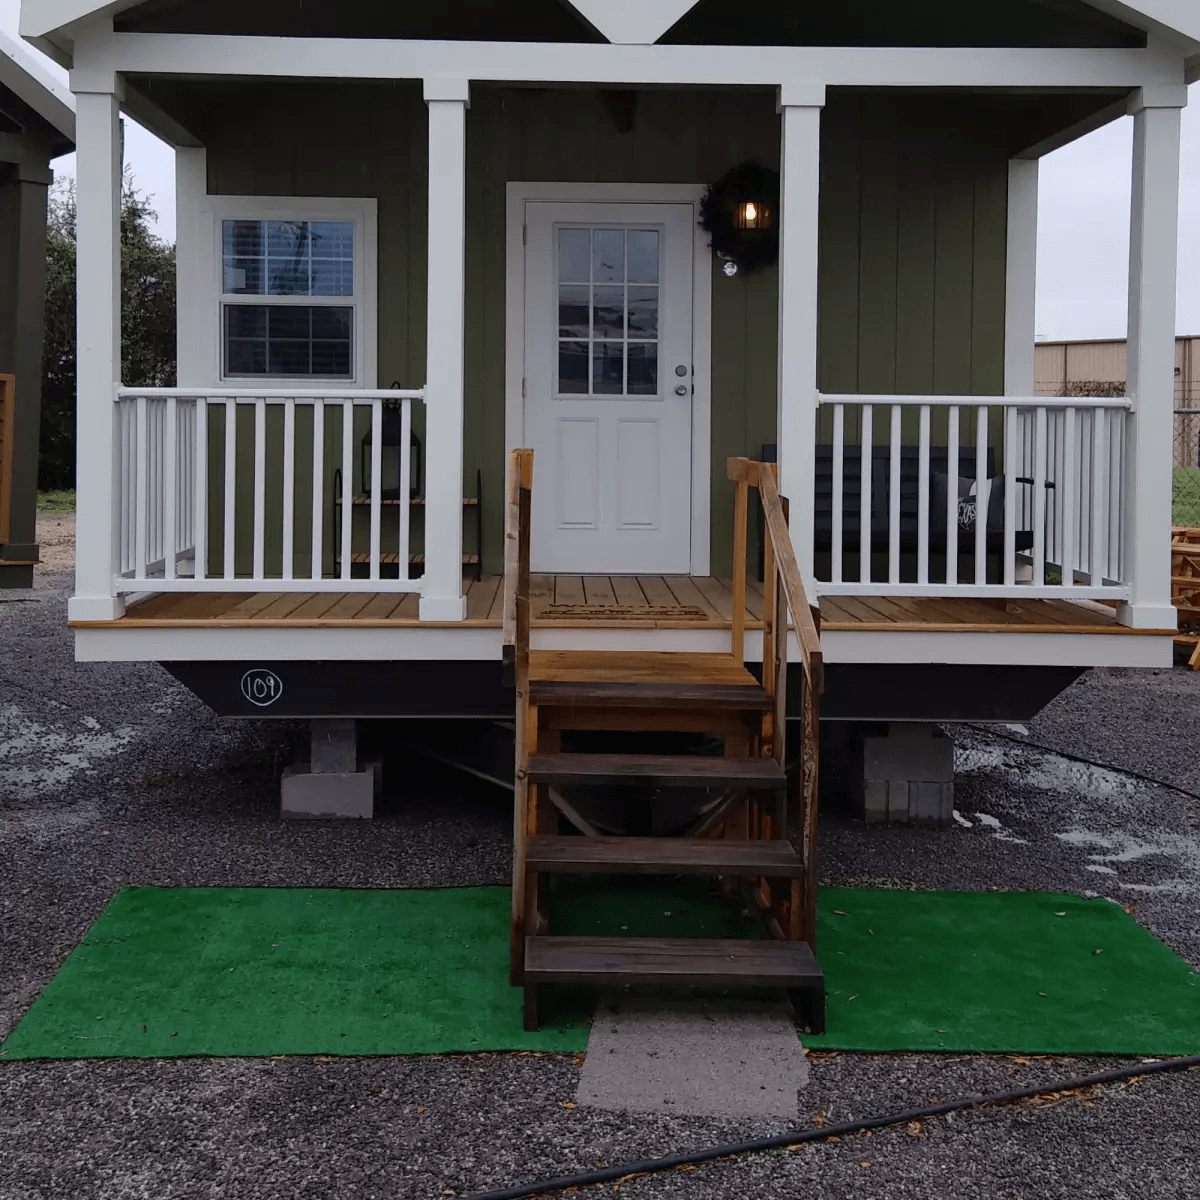 The Ranch Tiny Houses For Sale Mansfield Texas Tiny